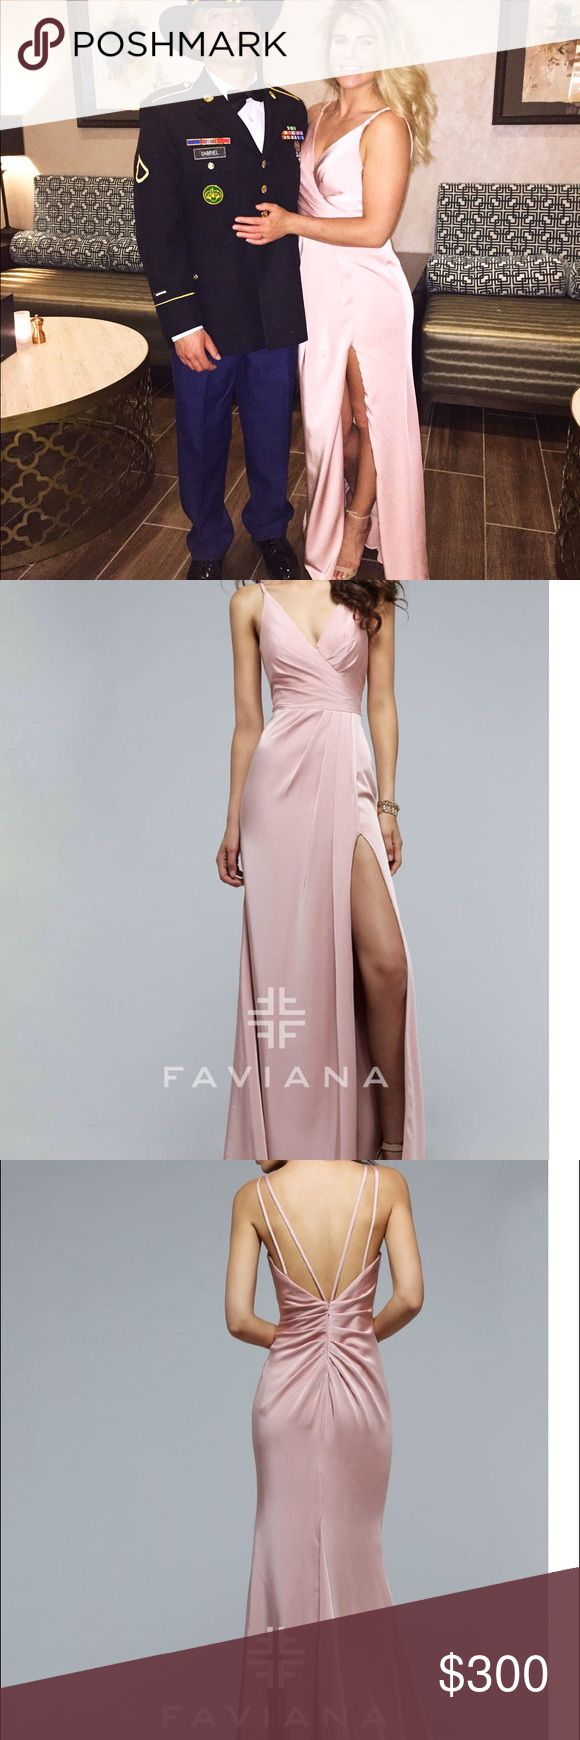 Faviana Dusty Pink Evening Gown Faviana dusty pink Evening Gown. Size: 4. simplistic, yet classic faille satin dress features a v-neck with just the right amount of plunge. The draped front adds texture to the long skirt, while the high slit reveals just the right amount of skin. The back is adorned with thin straps and ruching that are architecturally placed to flatter your figure. This exquisite dress is perfect for a wedding, prom or black tie affair. Worn once, perfect condition. Faviana…